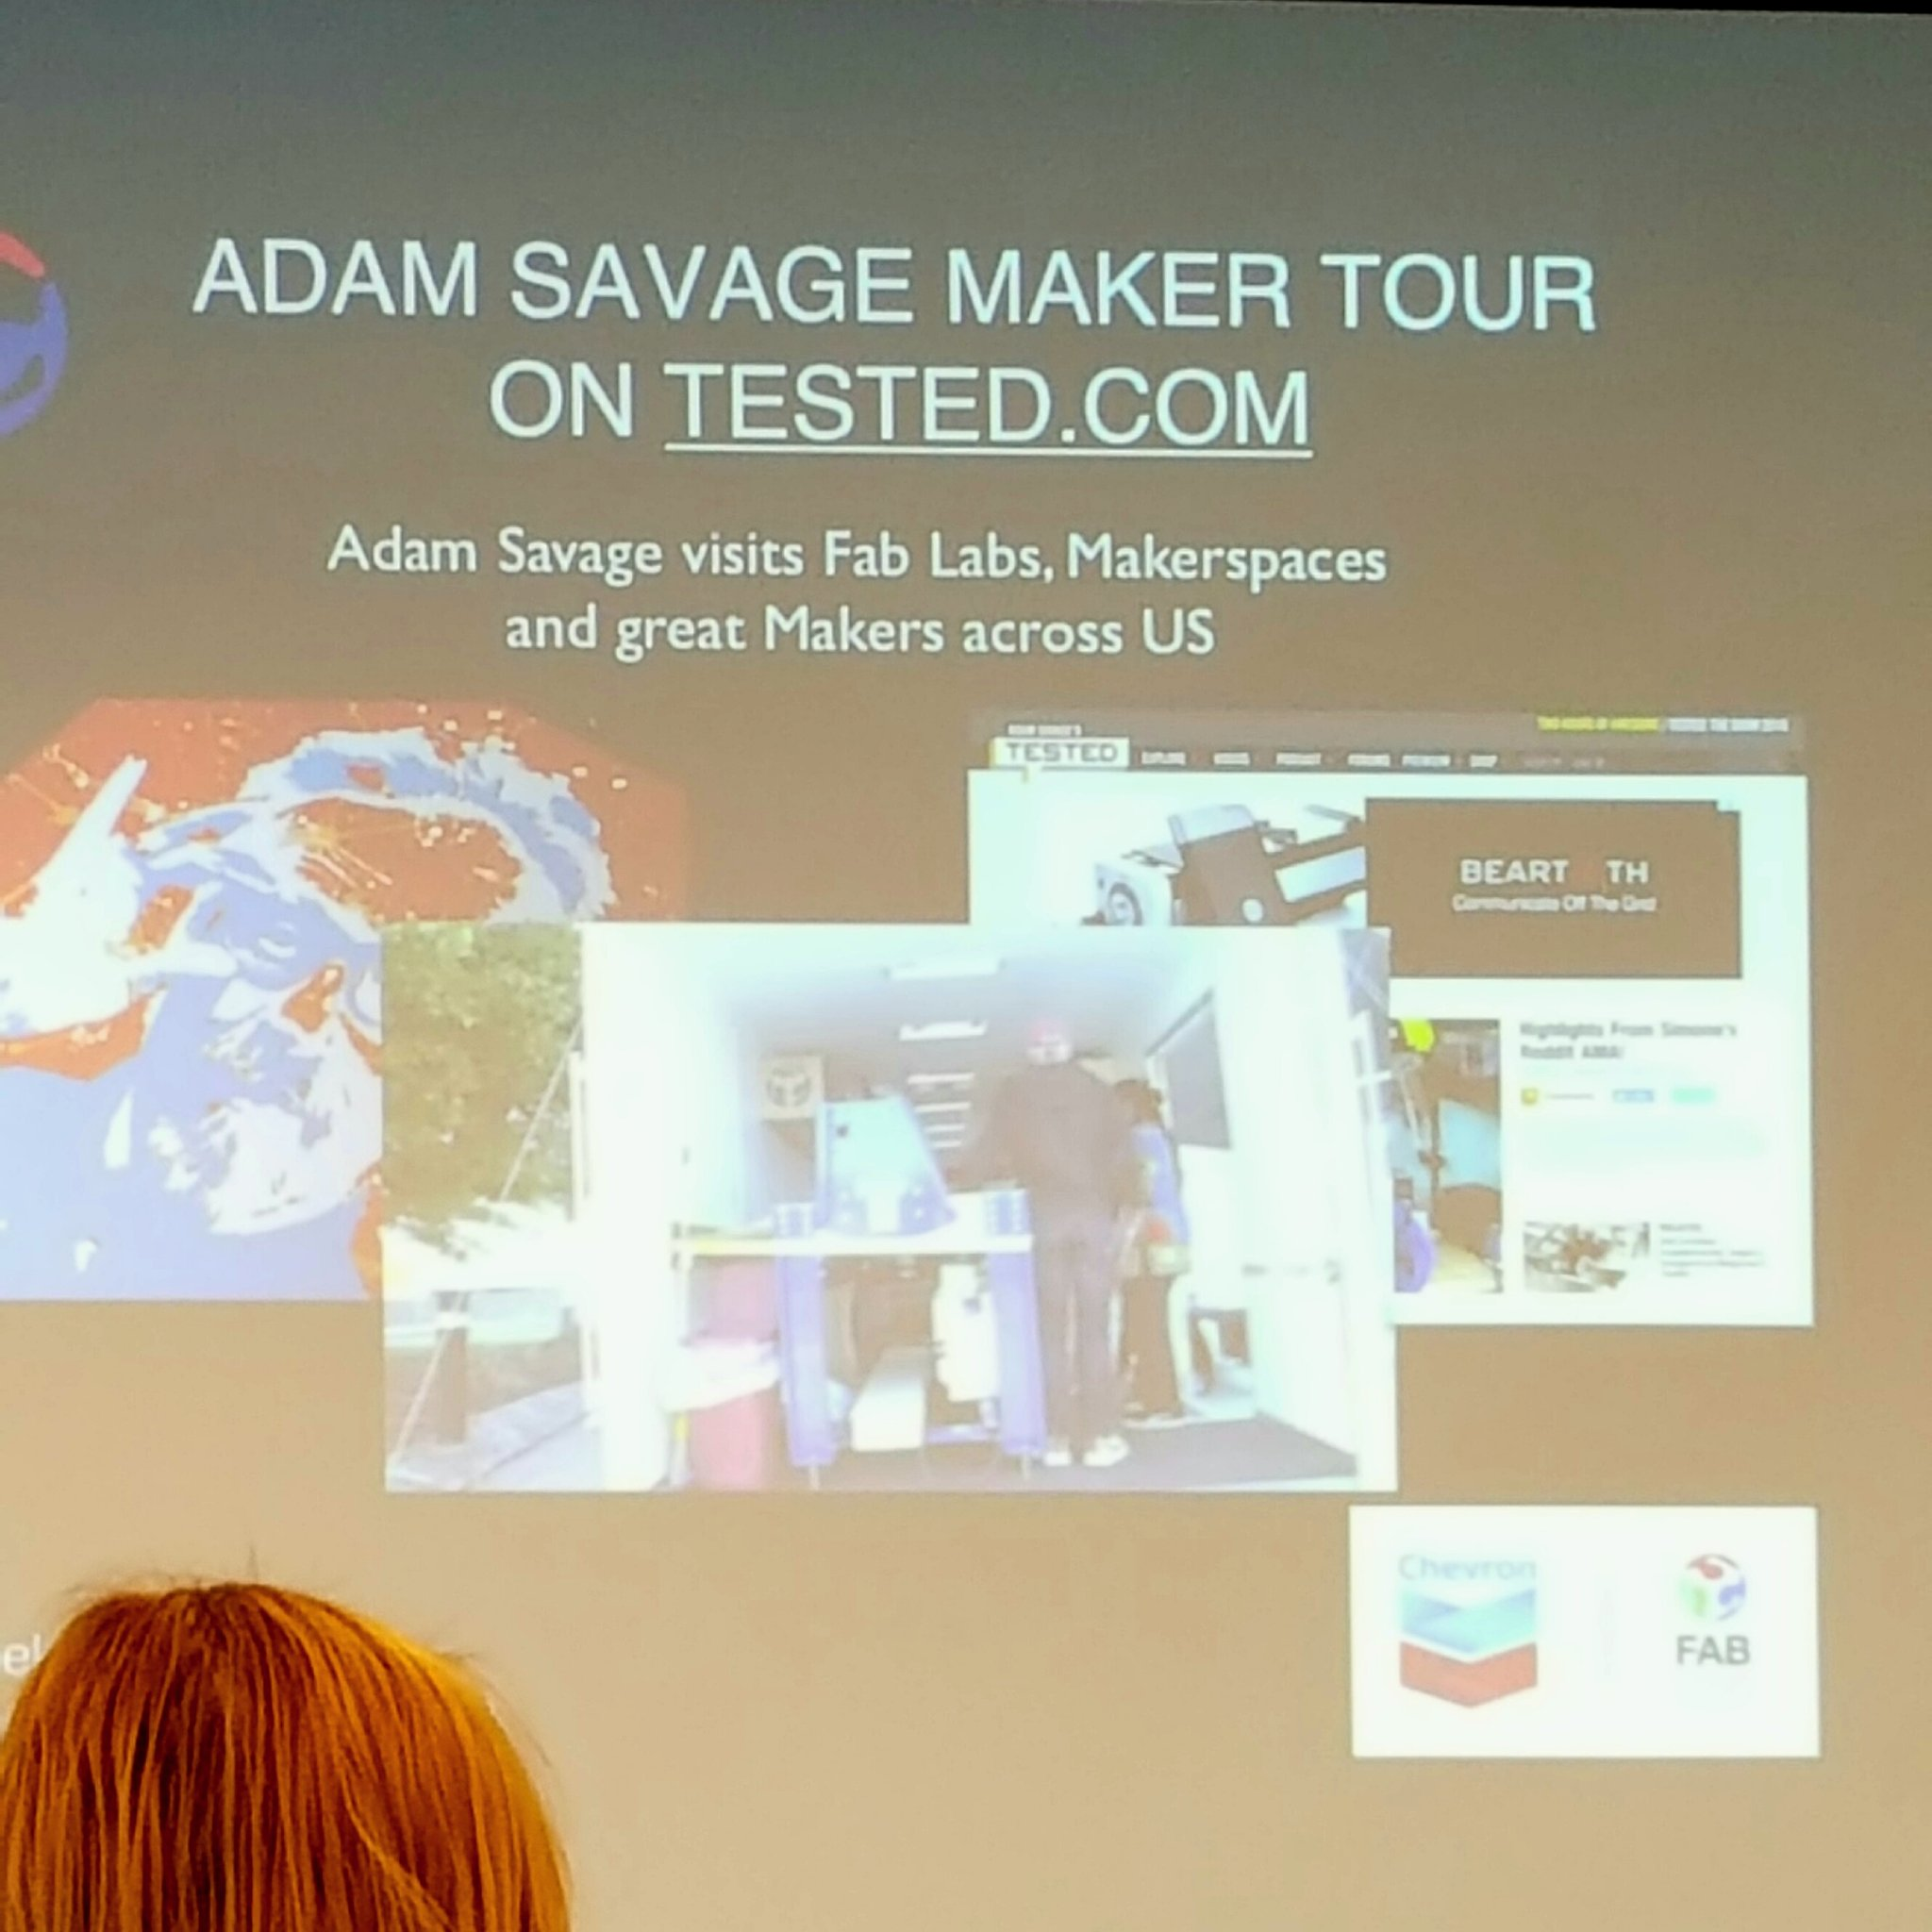 Heard about Adam Savage's new show visiting Maker Spaces at #digifabcon. Lots more info at conference! https://t.co/hBRfgLnurH